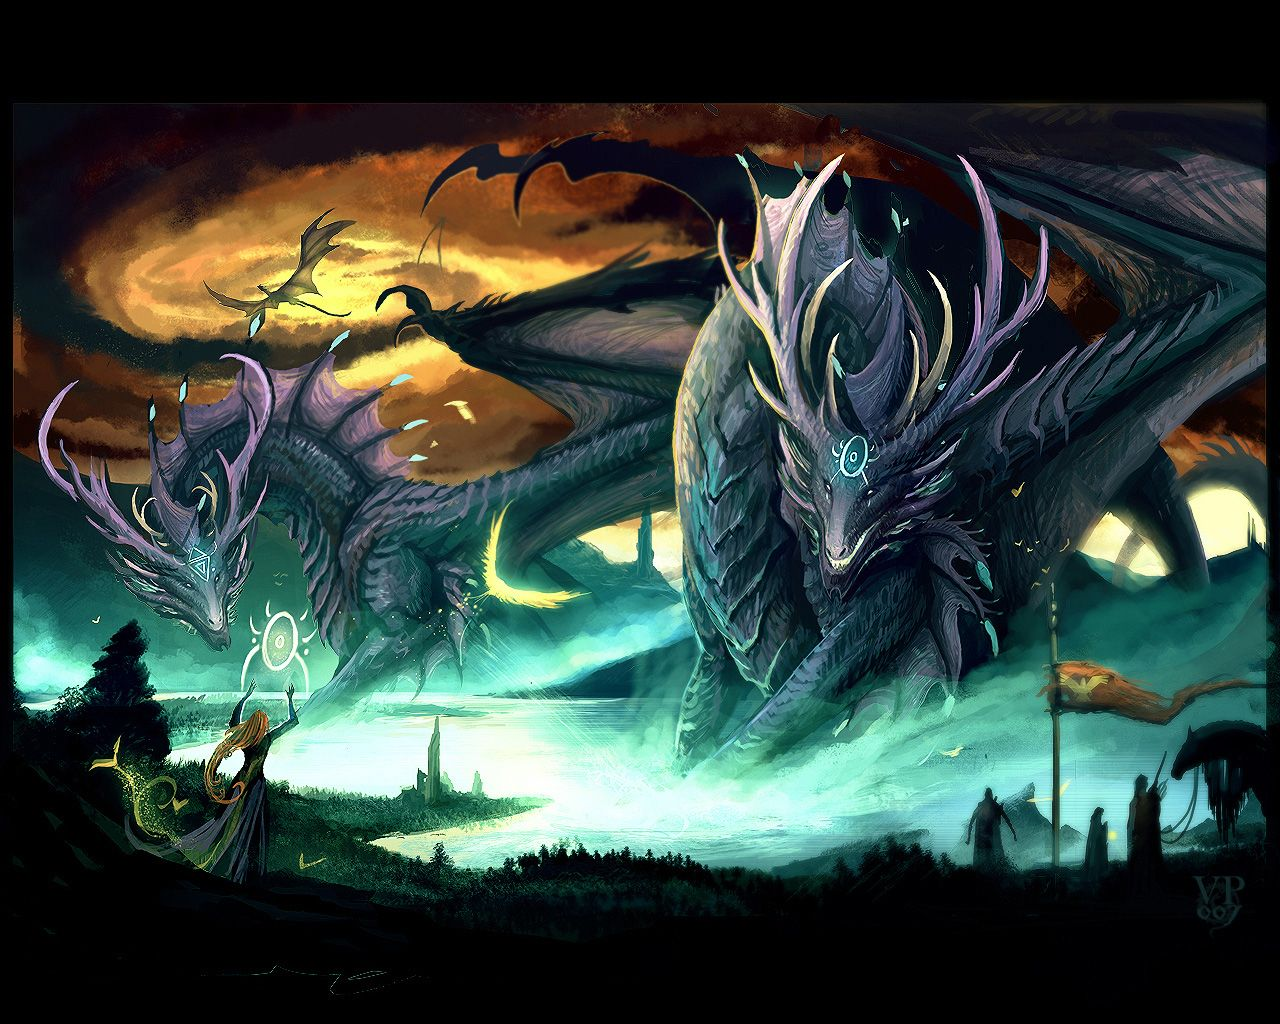 Dragon-with-Witch-dragons-24182977-1280-1024.jpg 1,280×1,024 pixels